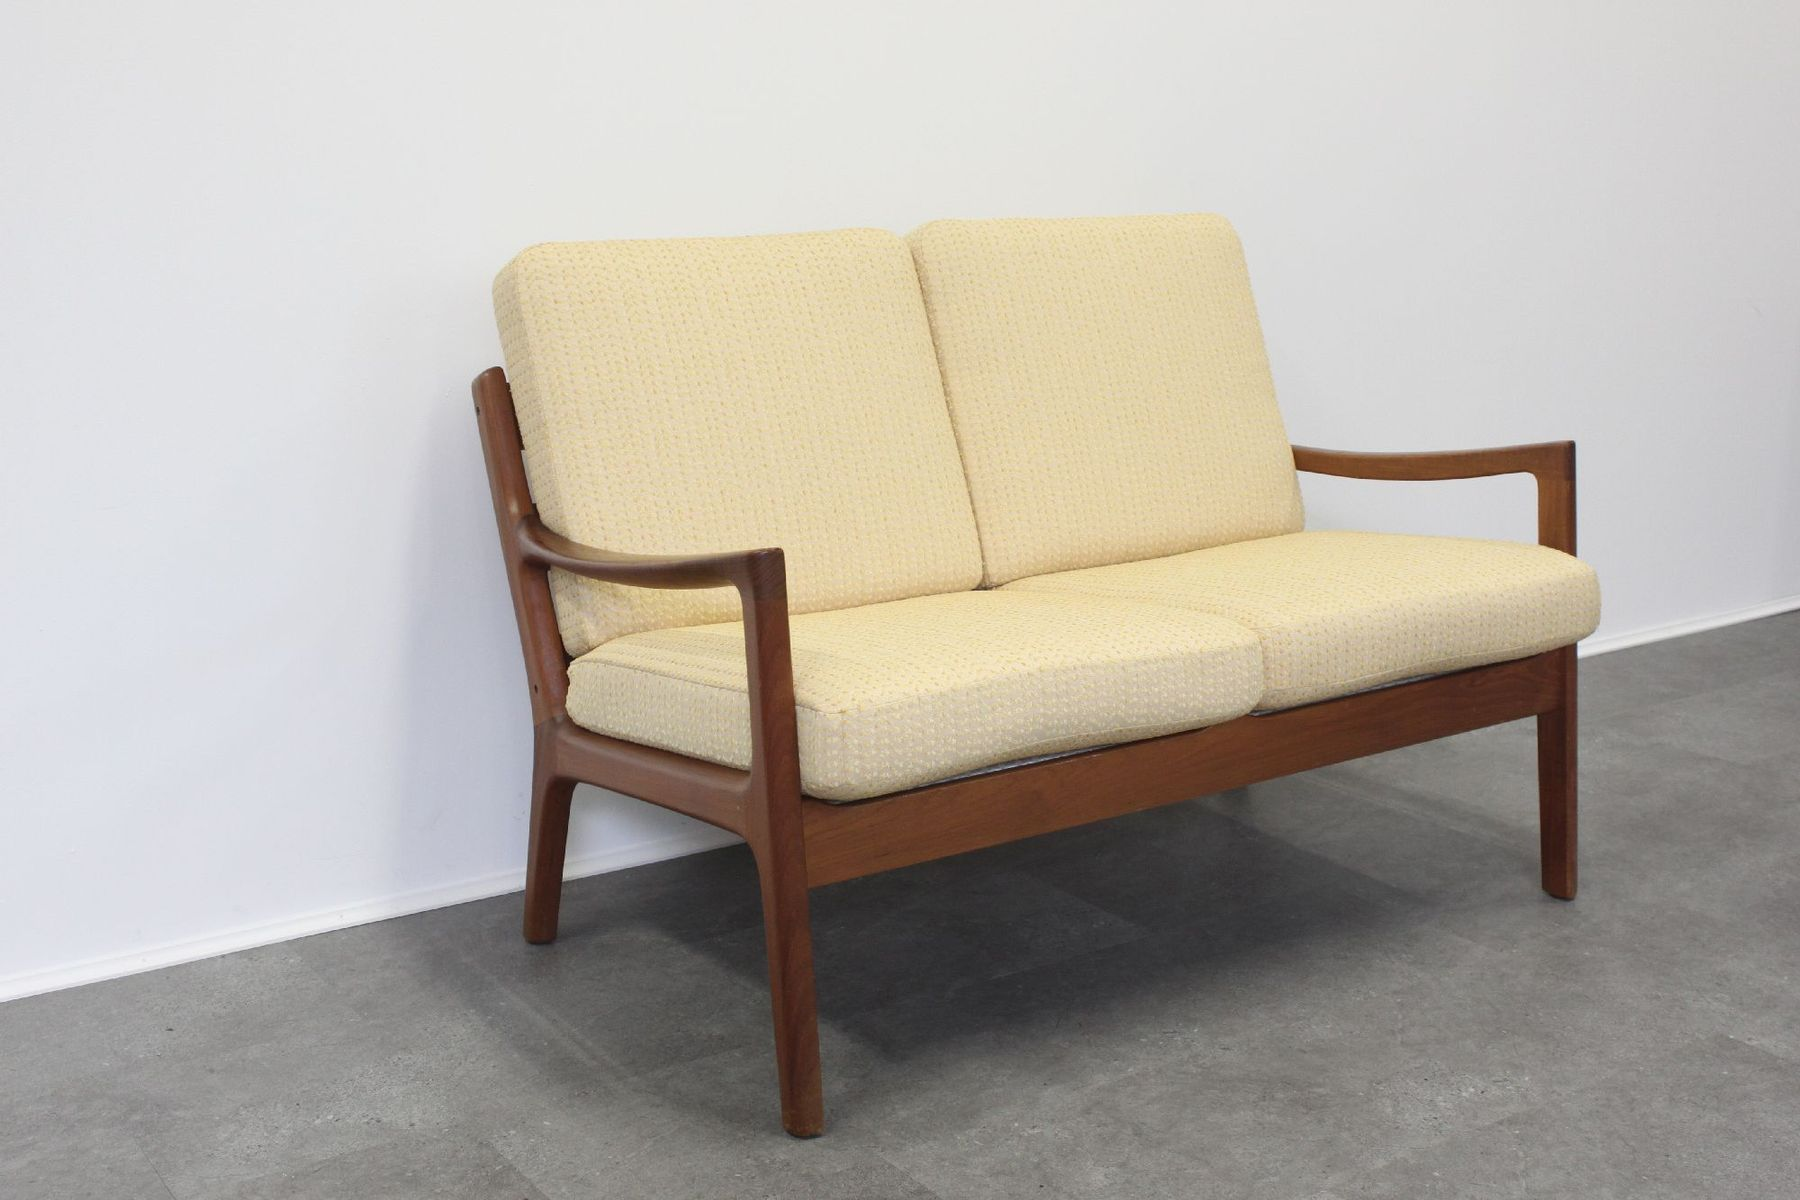 Vintage Teak Two Seater Senator Sofa By Ole Wanscher For